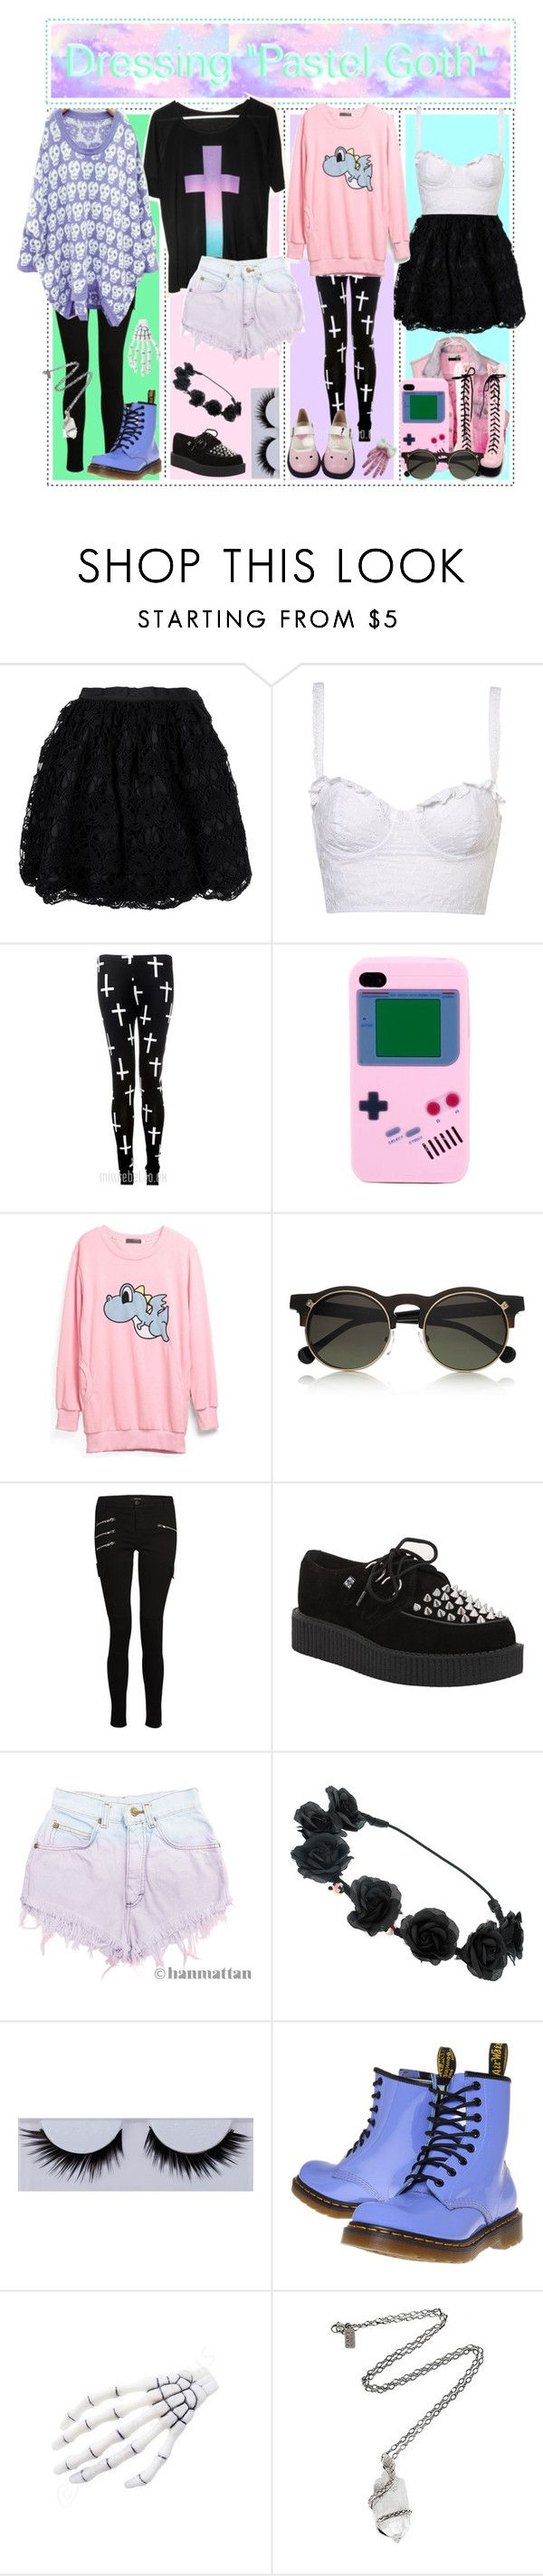 """""""How To Dress Pastel Goth"""" by hardcore-tipgirls ❤ liked on Polyvore featuring RED Valentino, Carven, J Brand, T.U.K., Levi's, Dr. Martens, Kreepsville 666 and Pamela Love"""